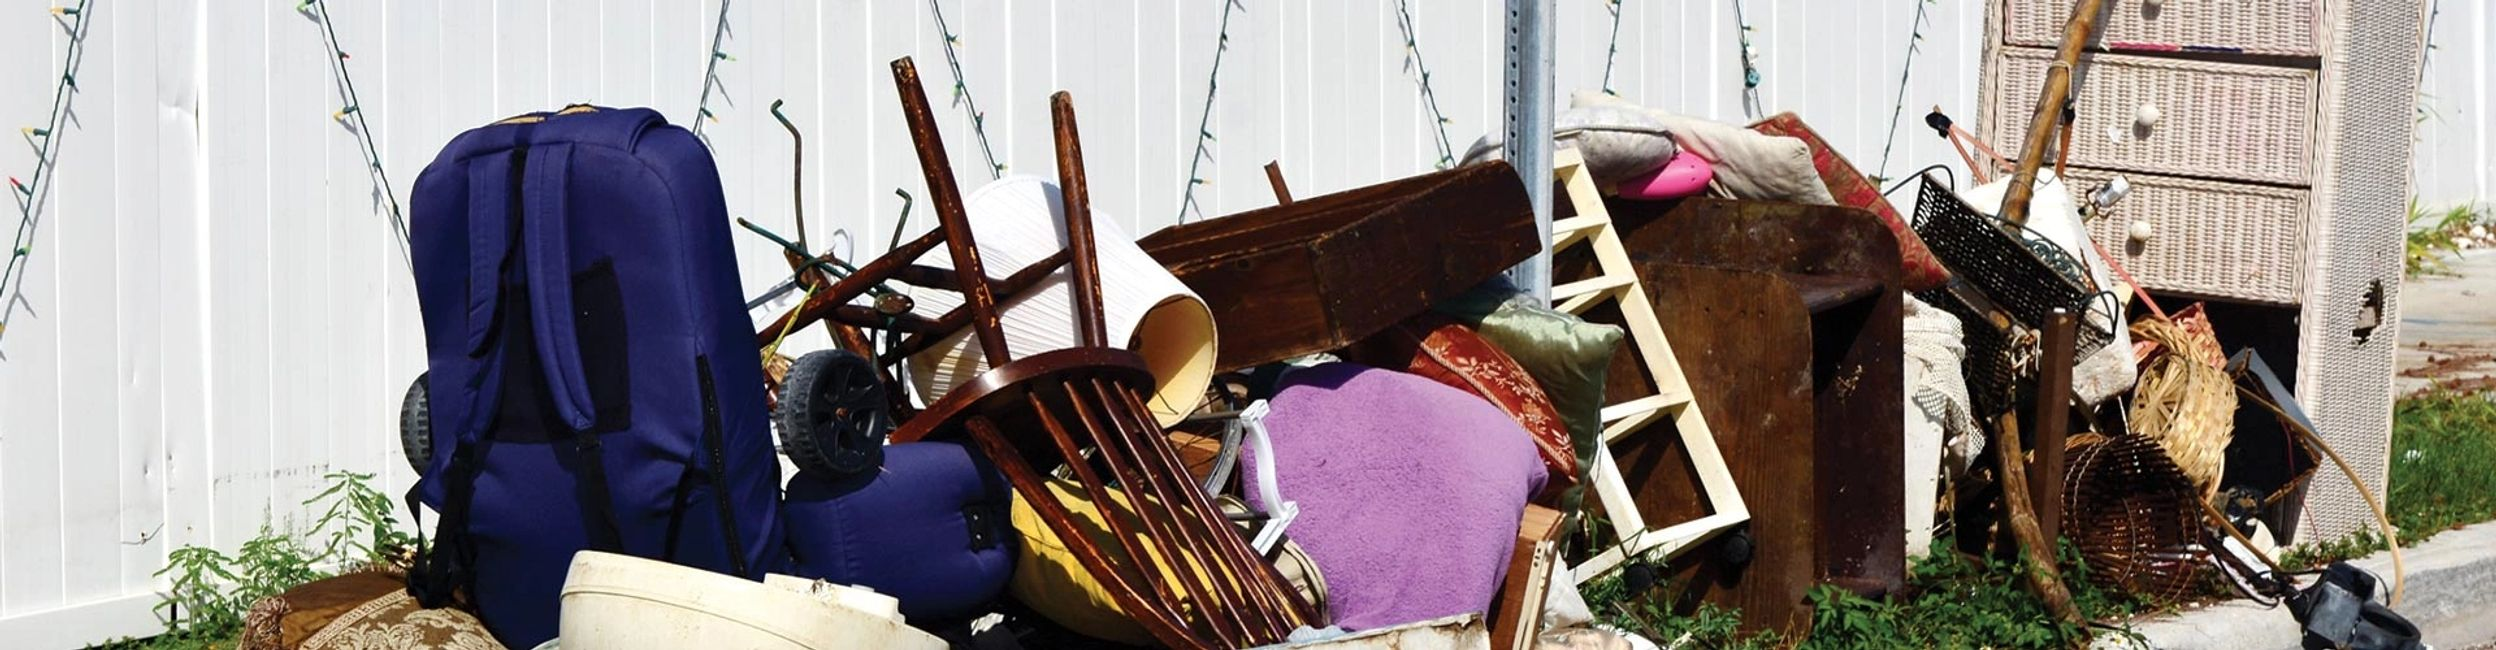 RNE Cleanout & Junk Removal offers full-service junk removal and curbside pick up.